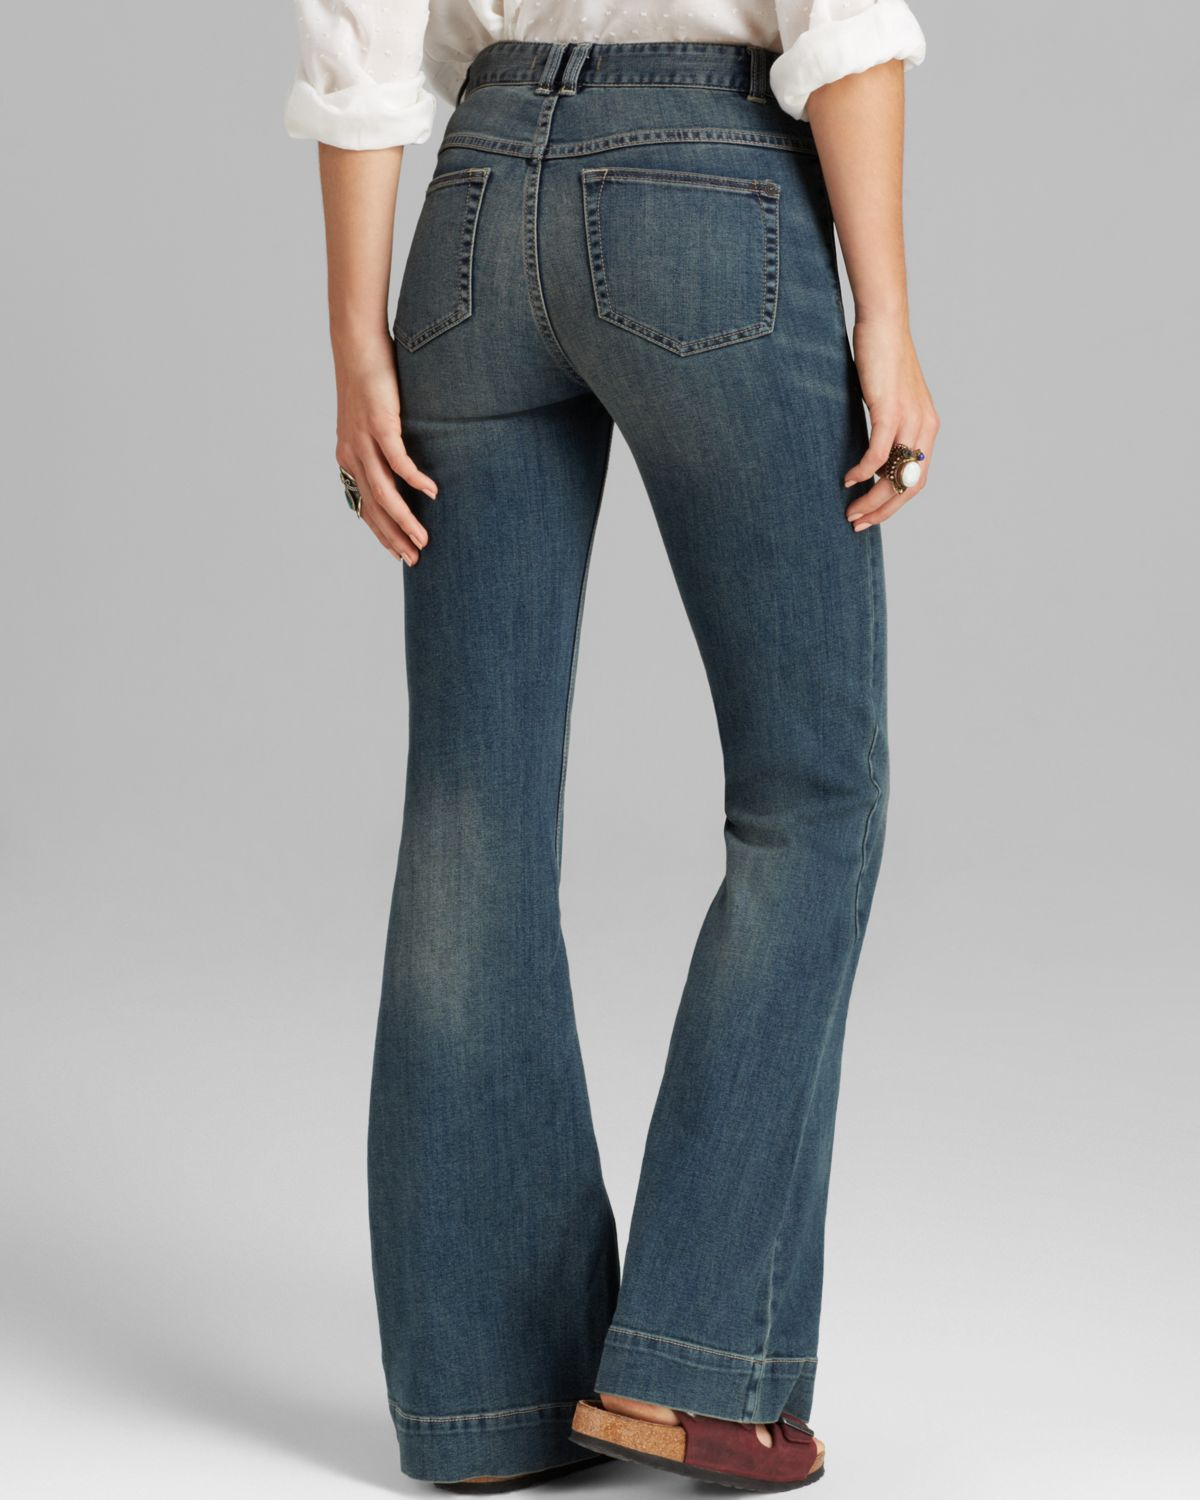 Lyst - Free People Jeans